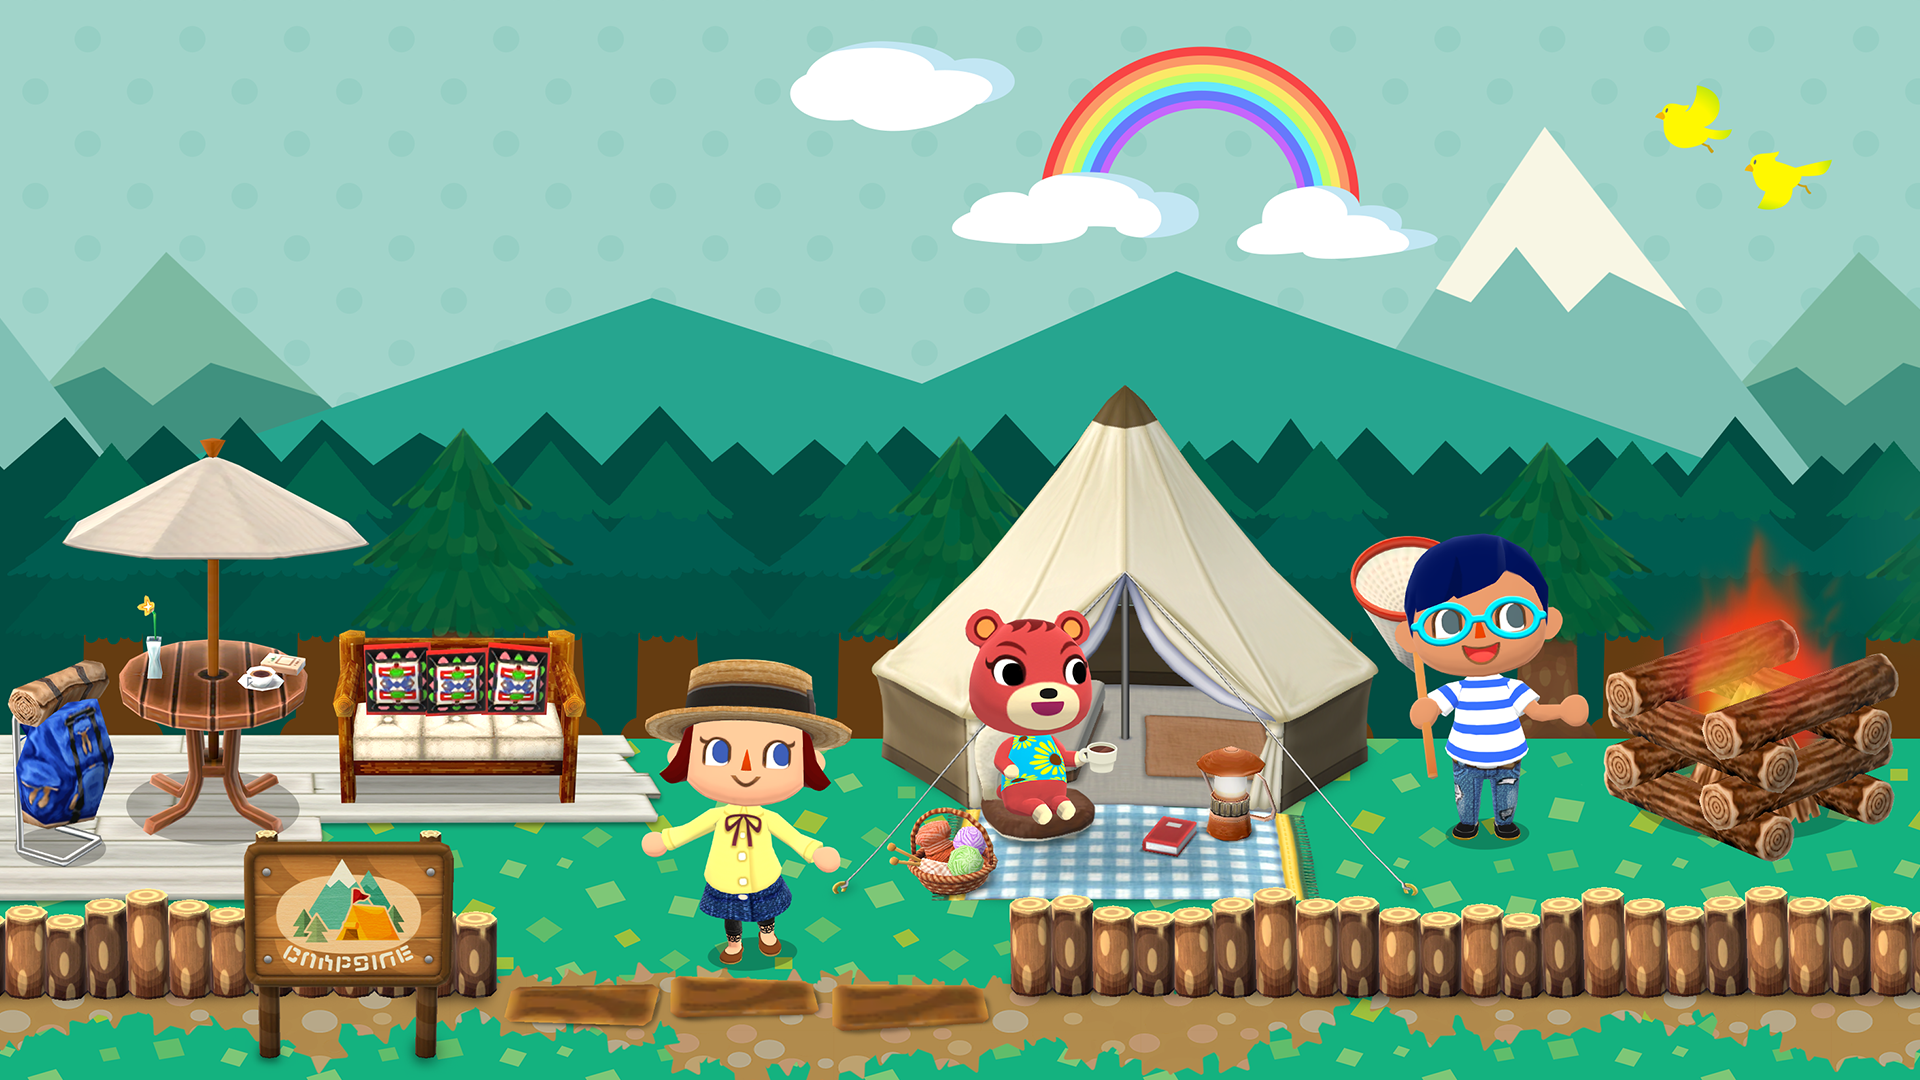 Fire Emblem Heroes & Animal Crossing: Pocket Camp being removed from app stores in Belgium due to microtransaction issues